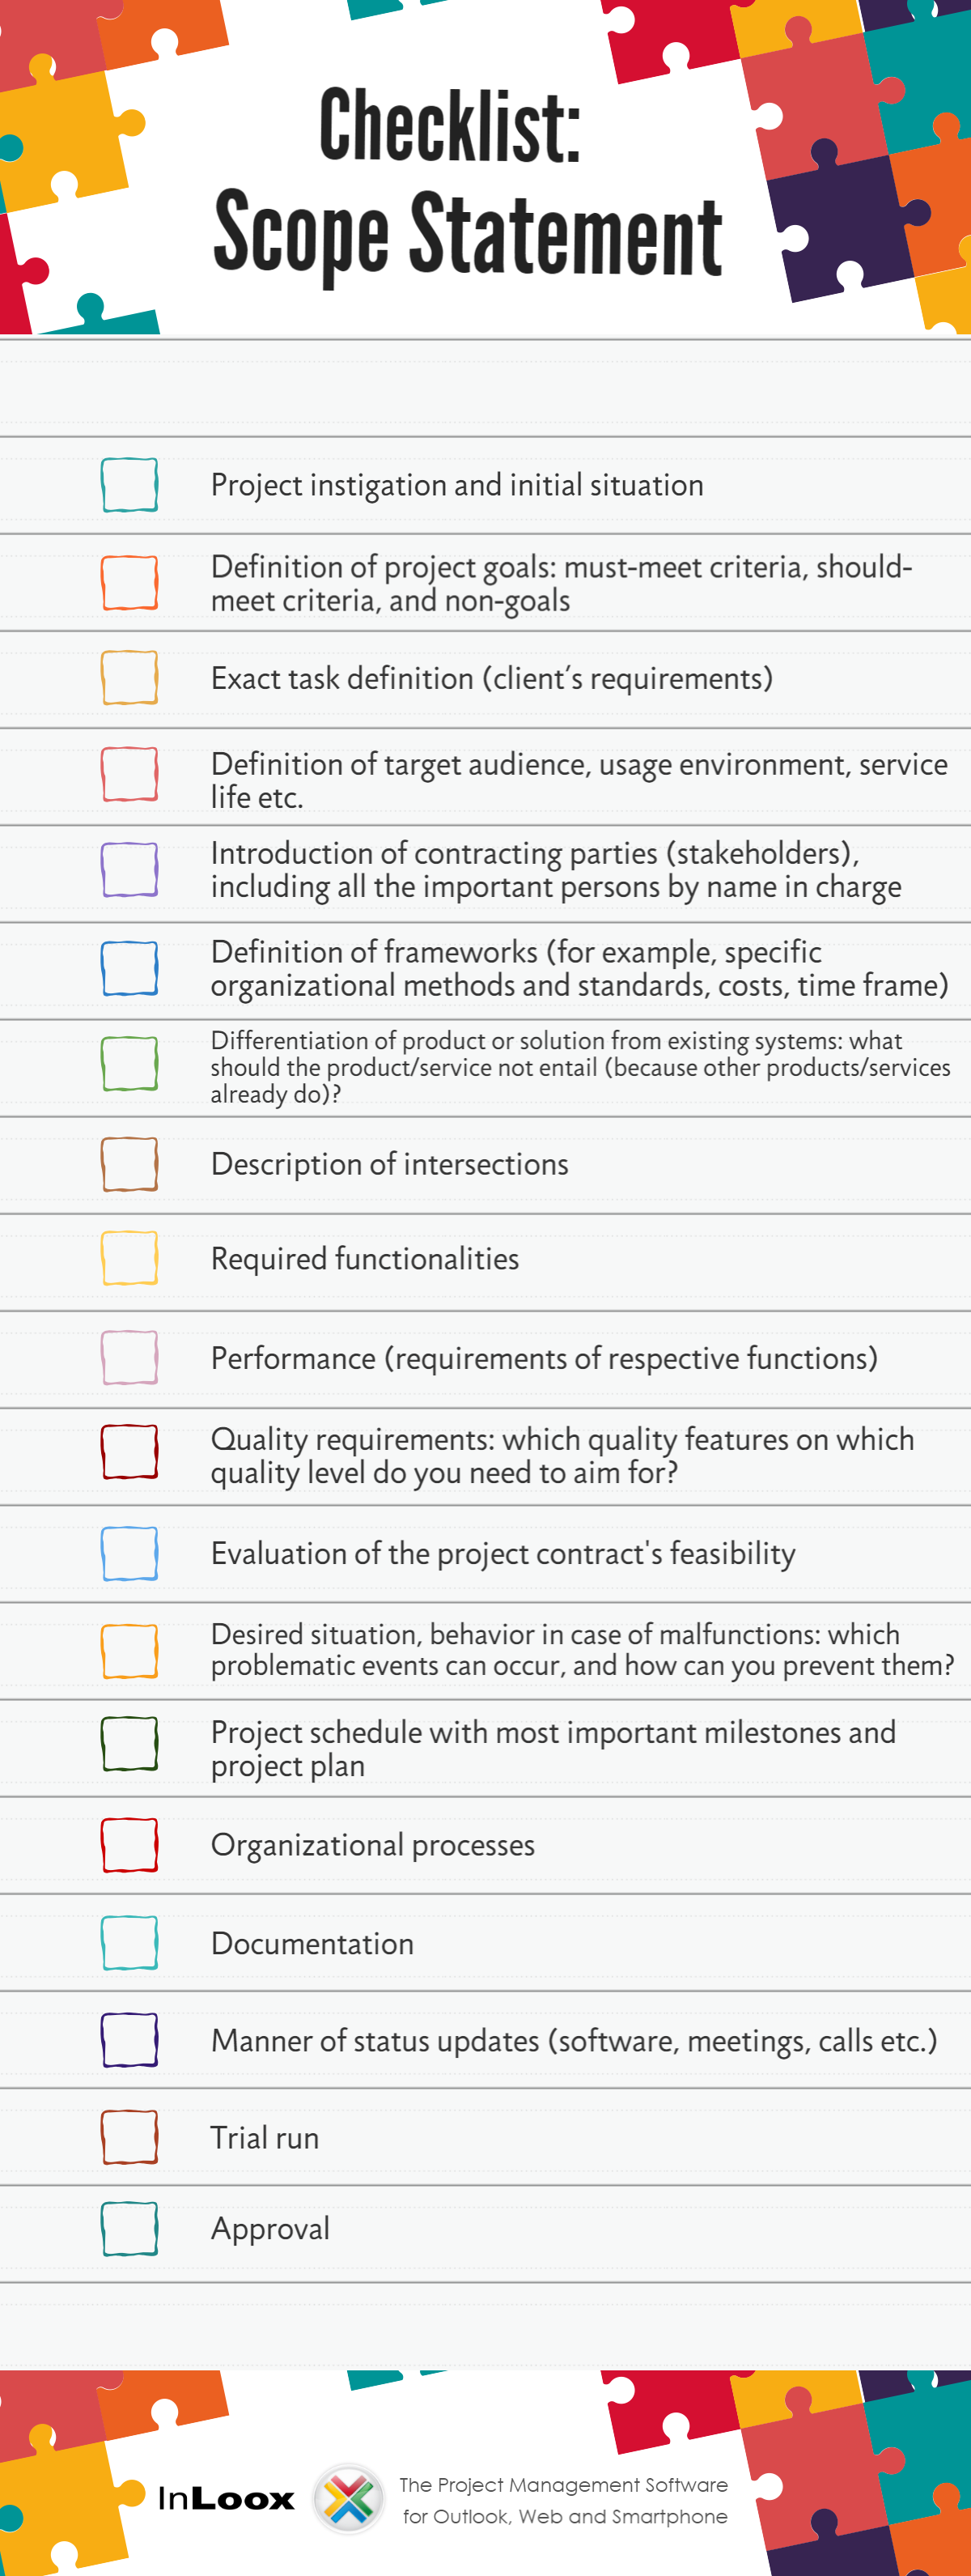 INFOGRAPHIC Checklist ProjectScope Statement